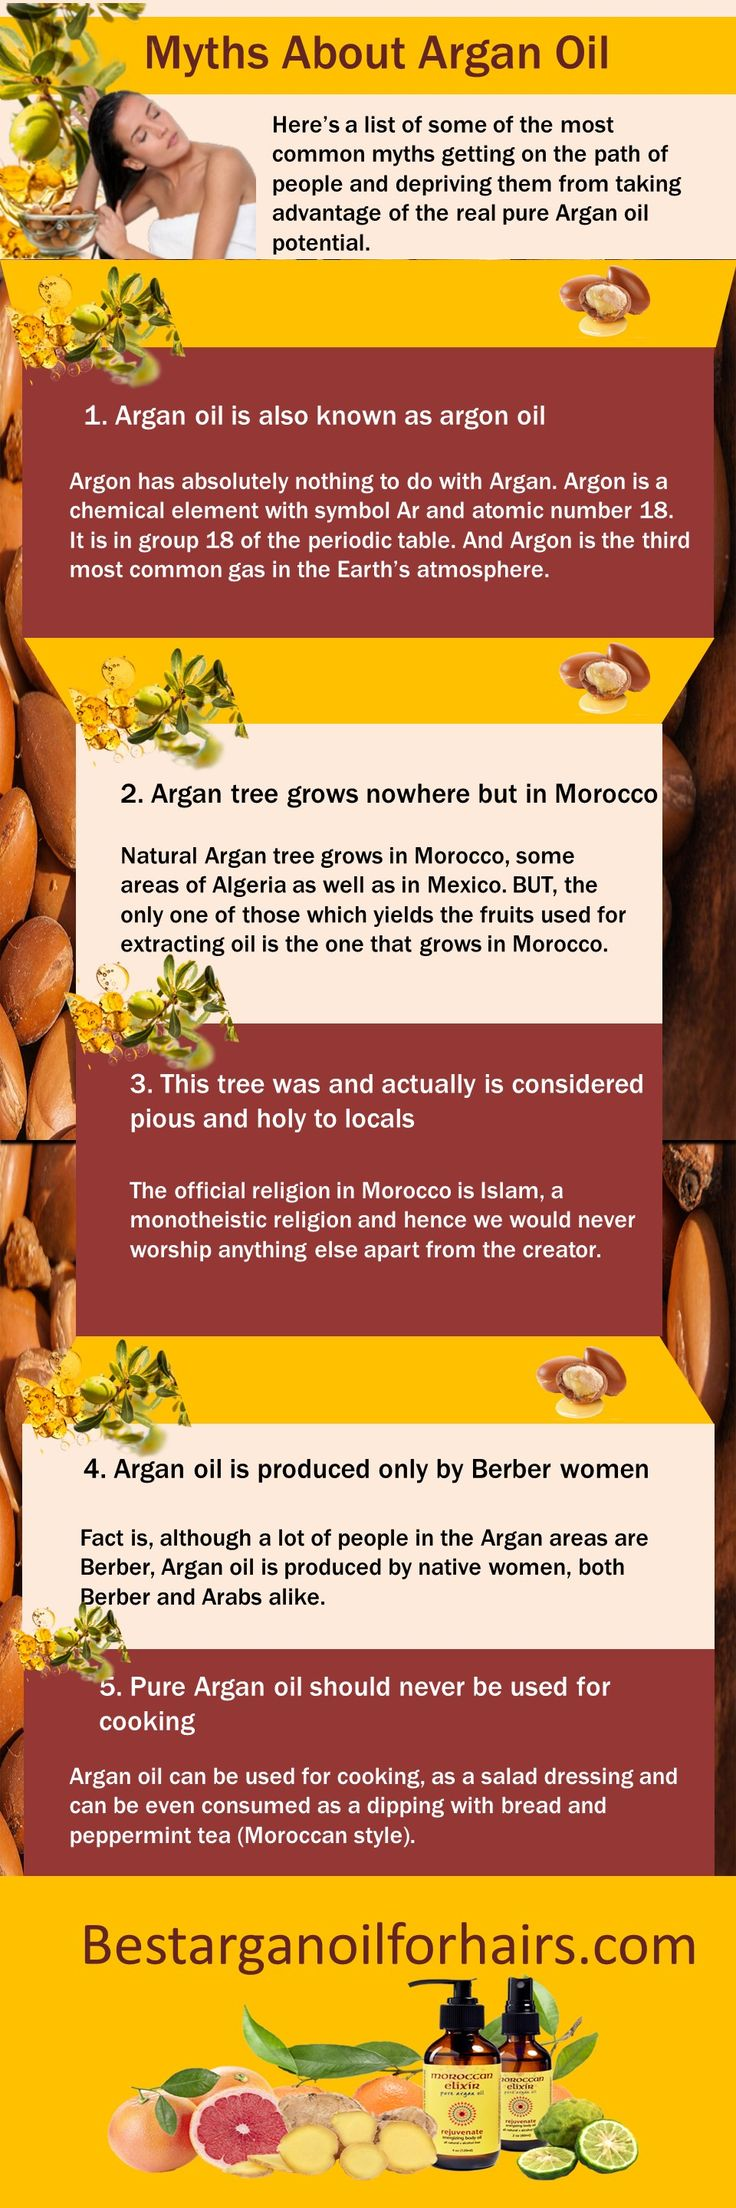 In this infographic, I have listed the myths about #Arganoil. Argan oil has so many advantages for our body. We can use argan oil for hair, face, teeth, cooking etc.